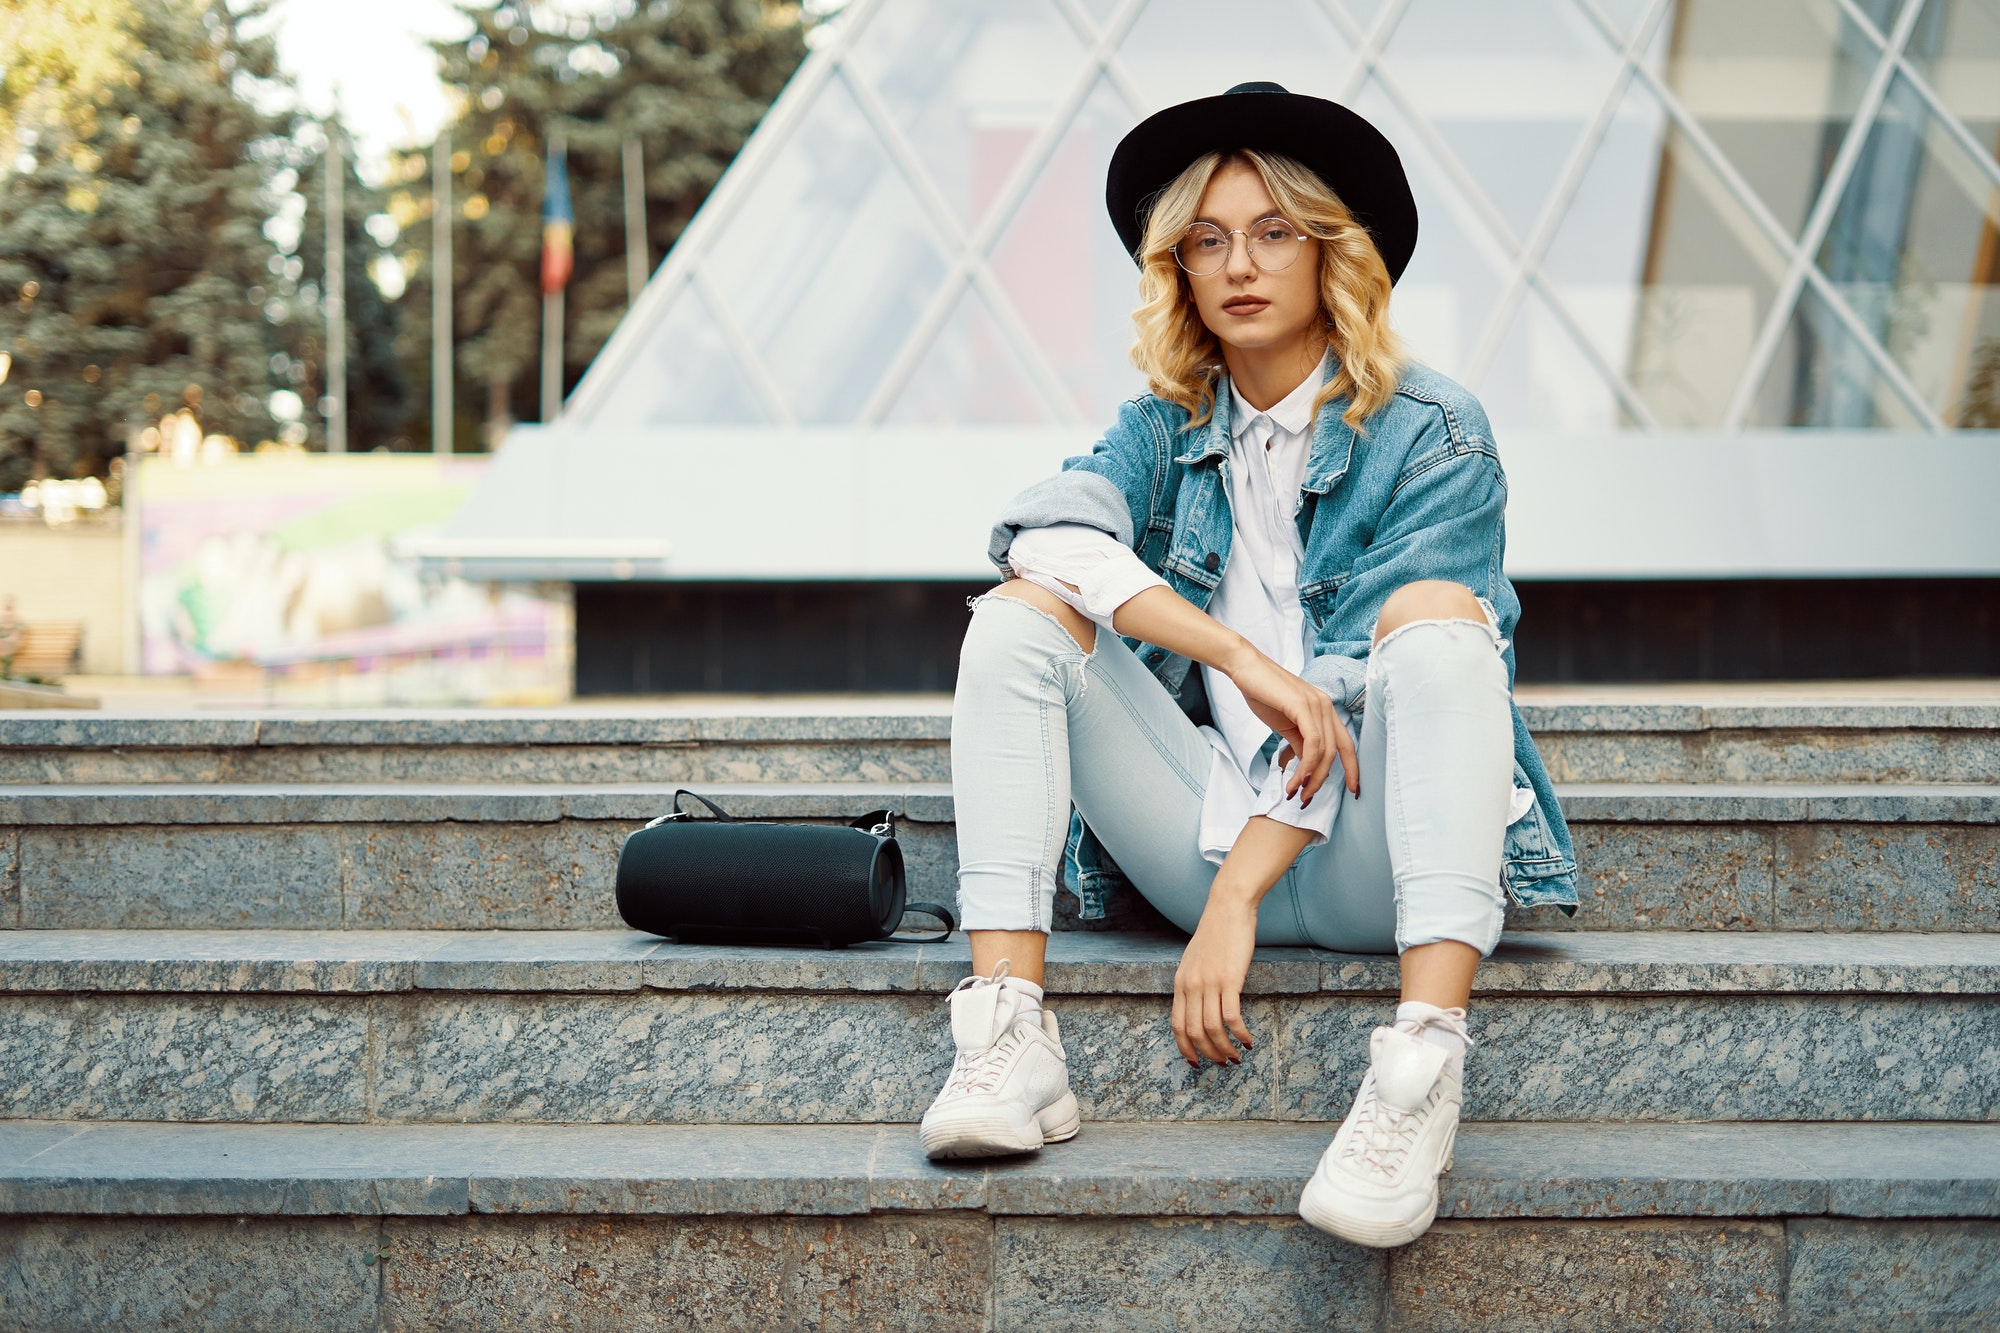 Fashionable modern woman with glasses in the city